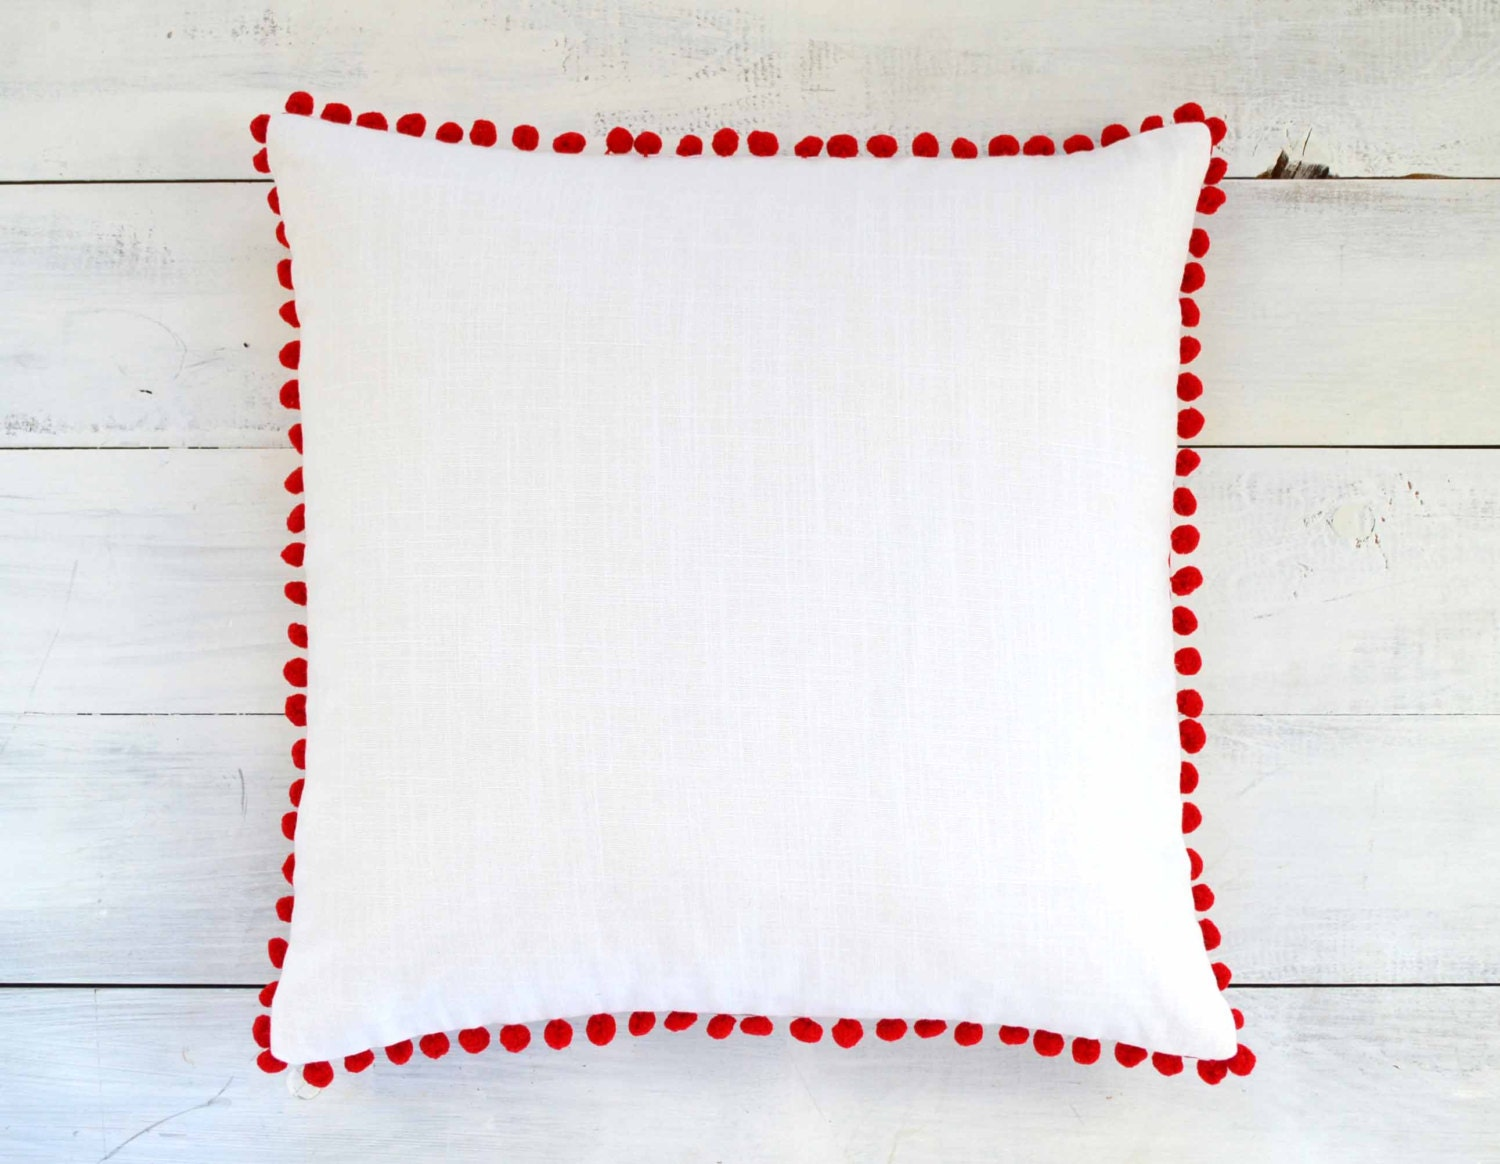 Red And White Throw Pillow Covers : White and Red Pom Pom Pillow Cover - Linen Look - 20 x 20 - Decorative Pillow, Throw Pillow, Red ...